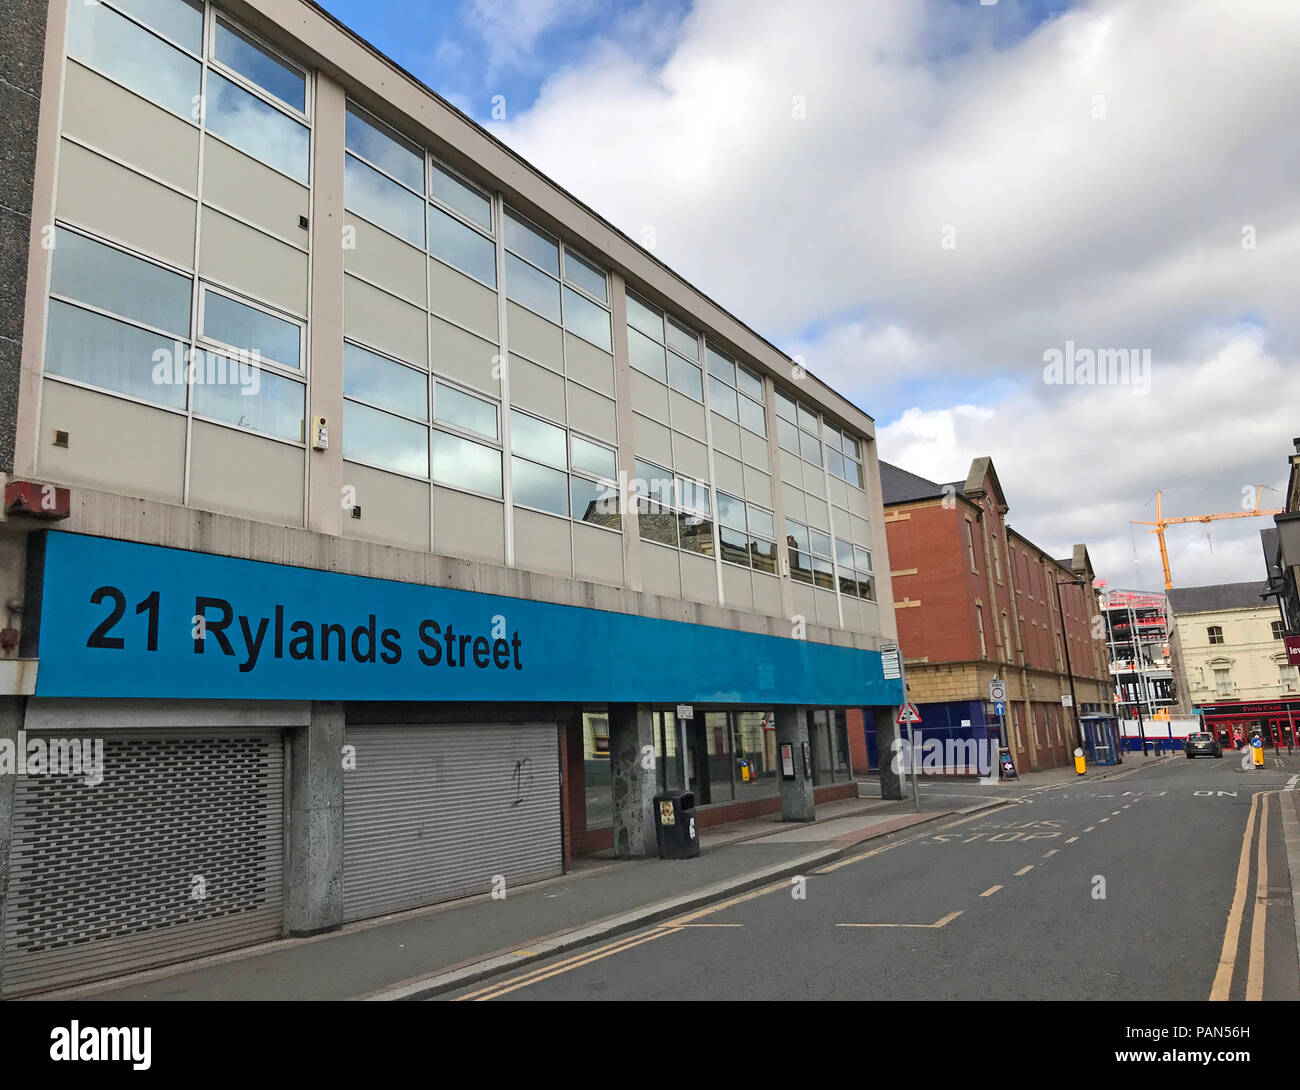 21 Rylands Street, Warrington town centre, Cheshire, North West England, UK - Stock Image